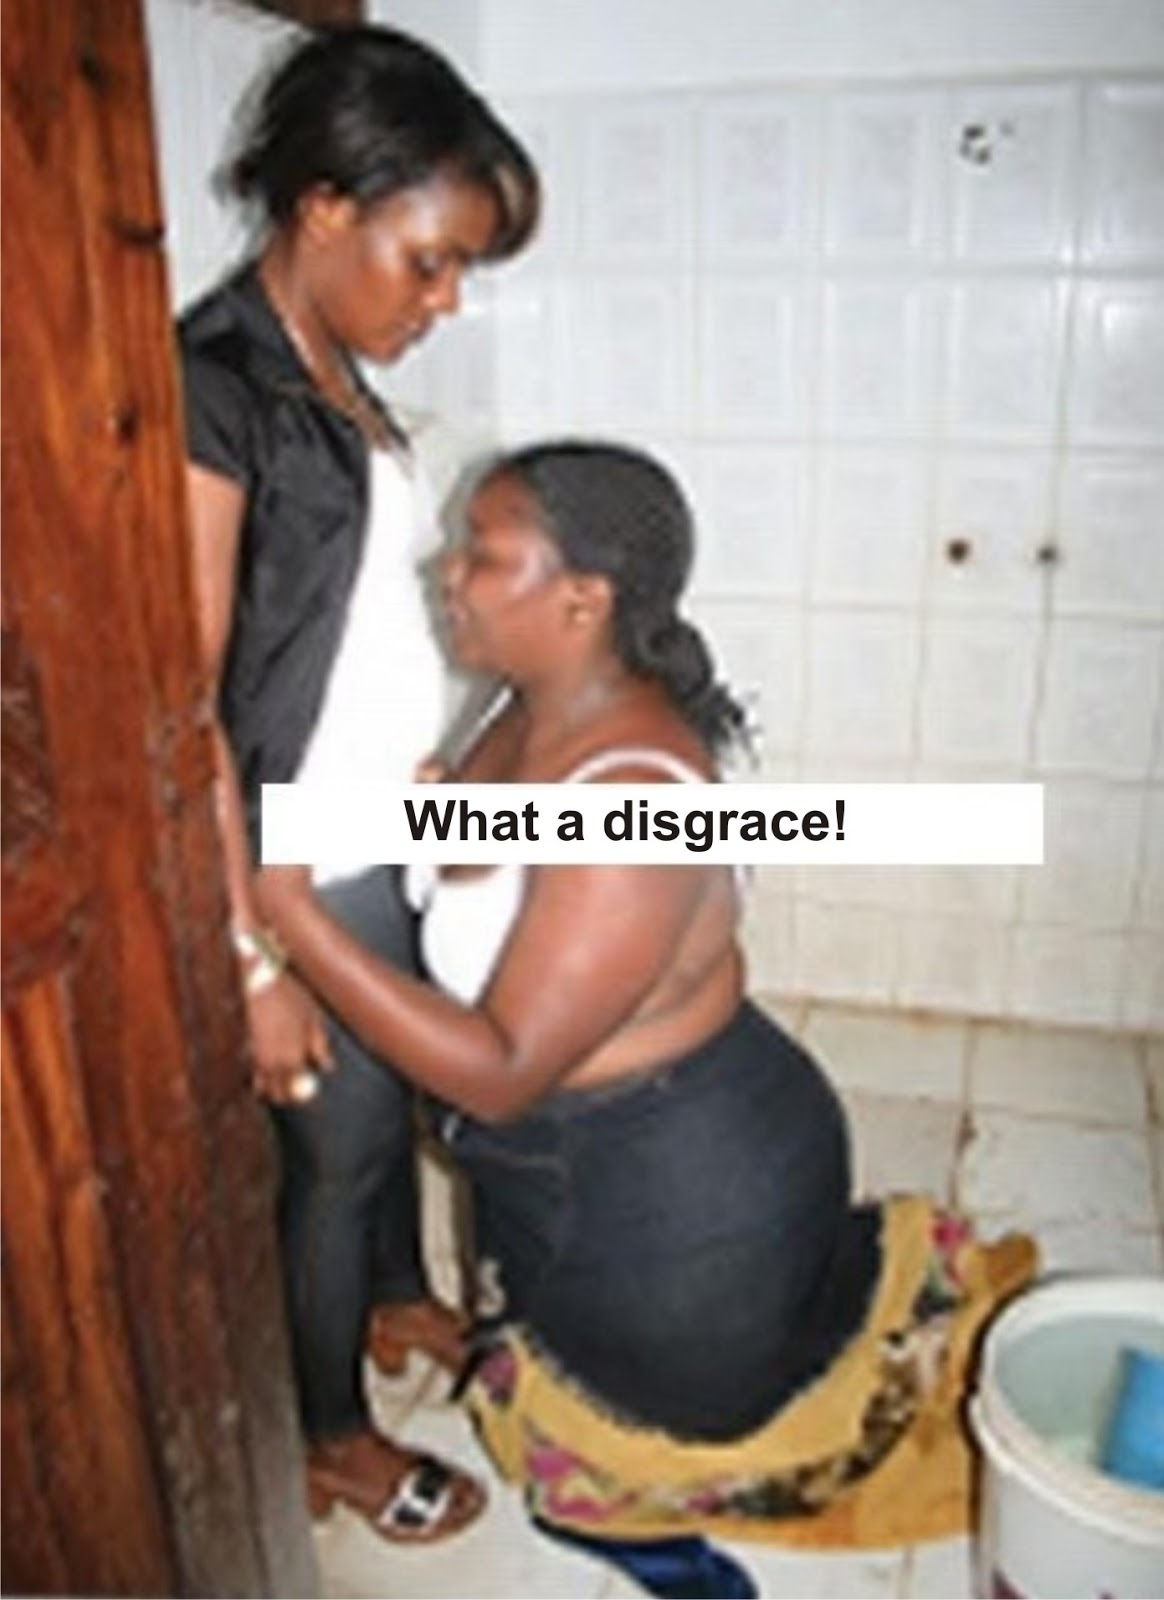 husband aroused by wife cheating